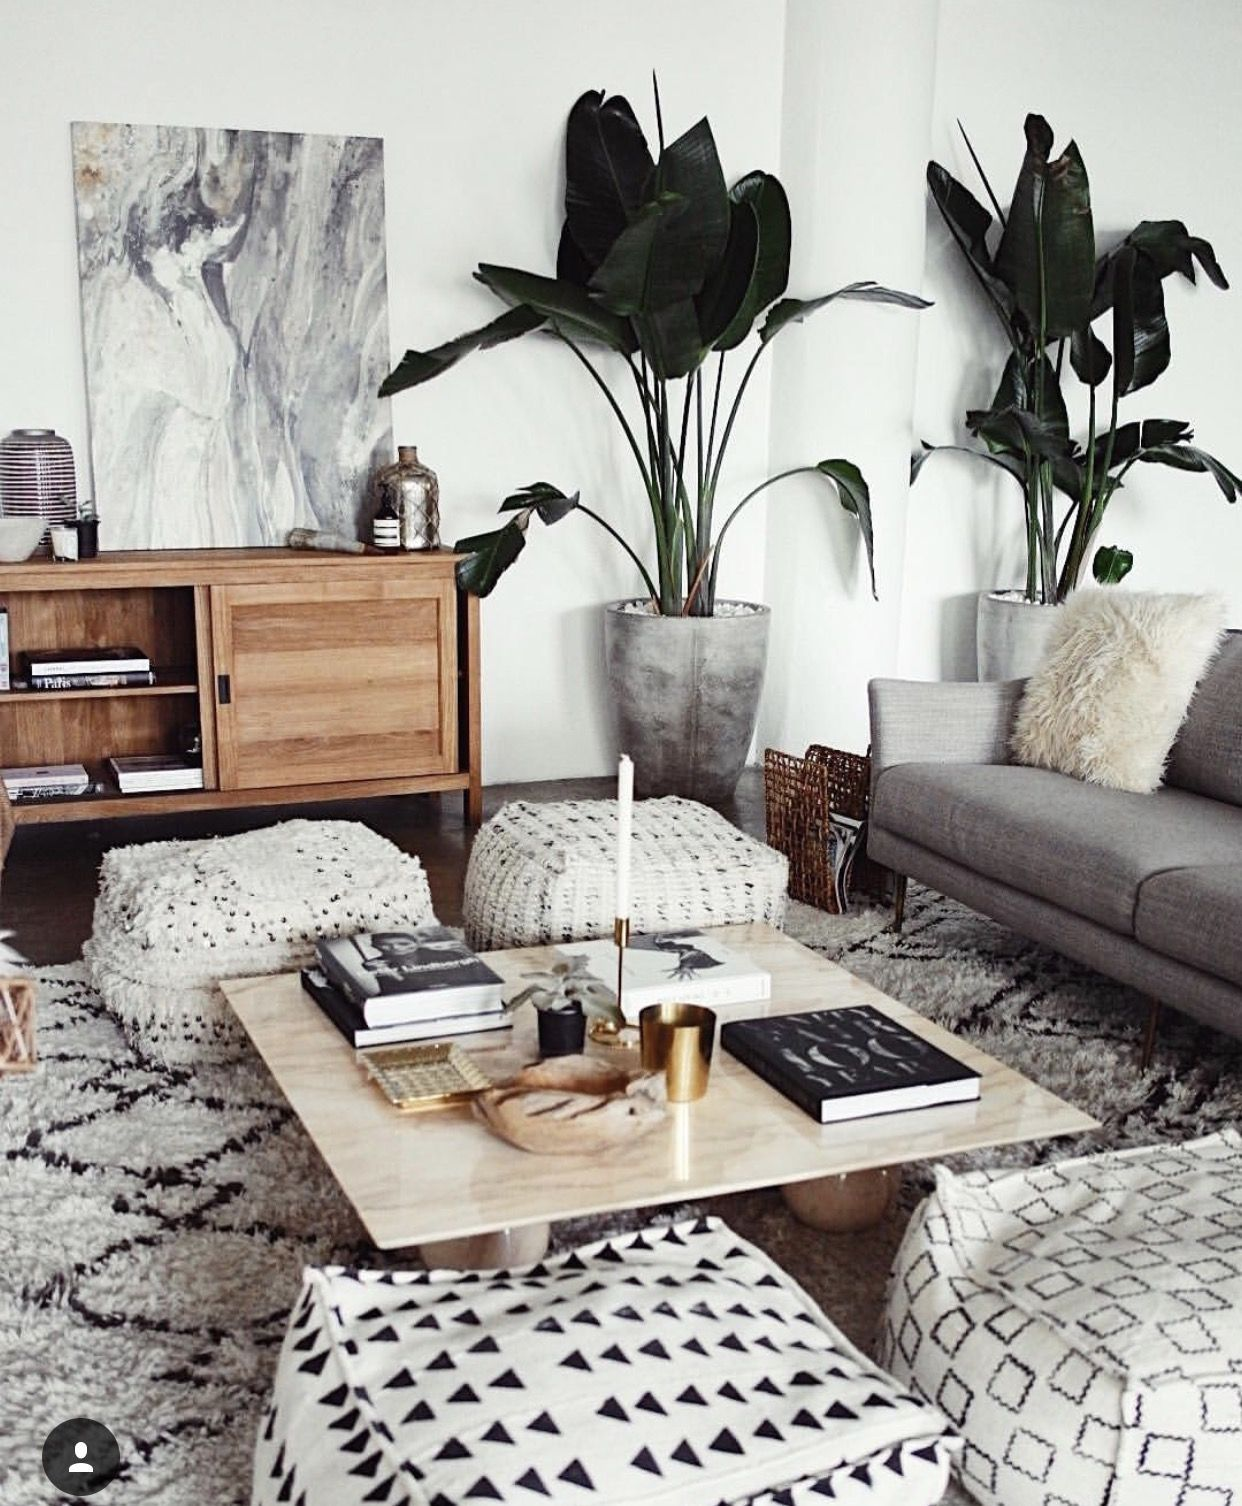 Top 8 Super Fun Patterned Living Room Chairs On Amazon  Small